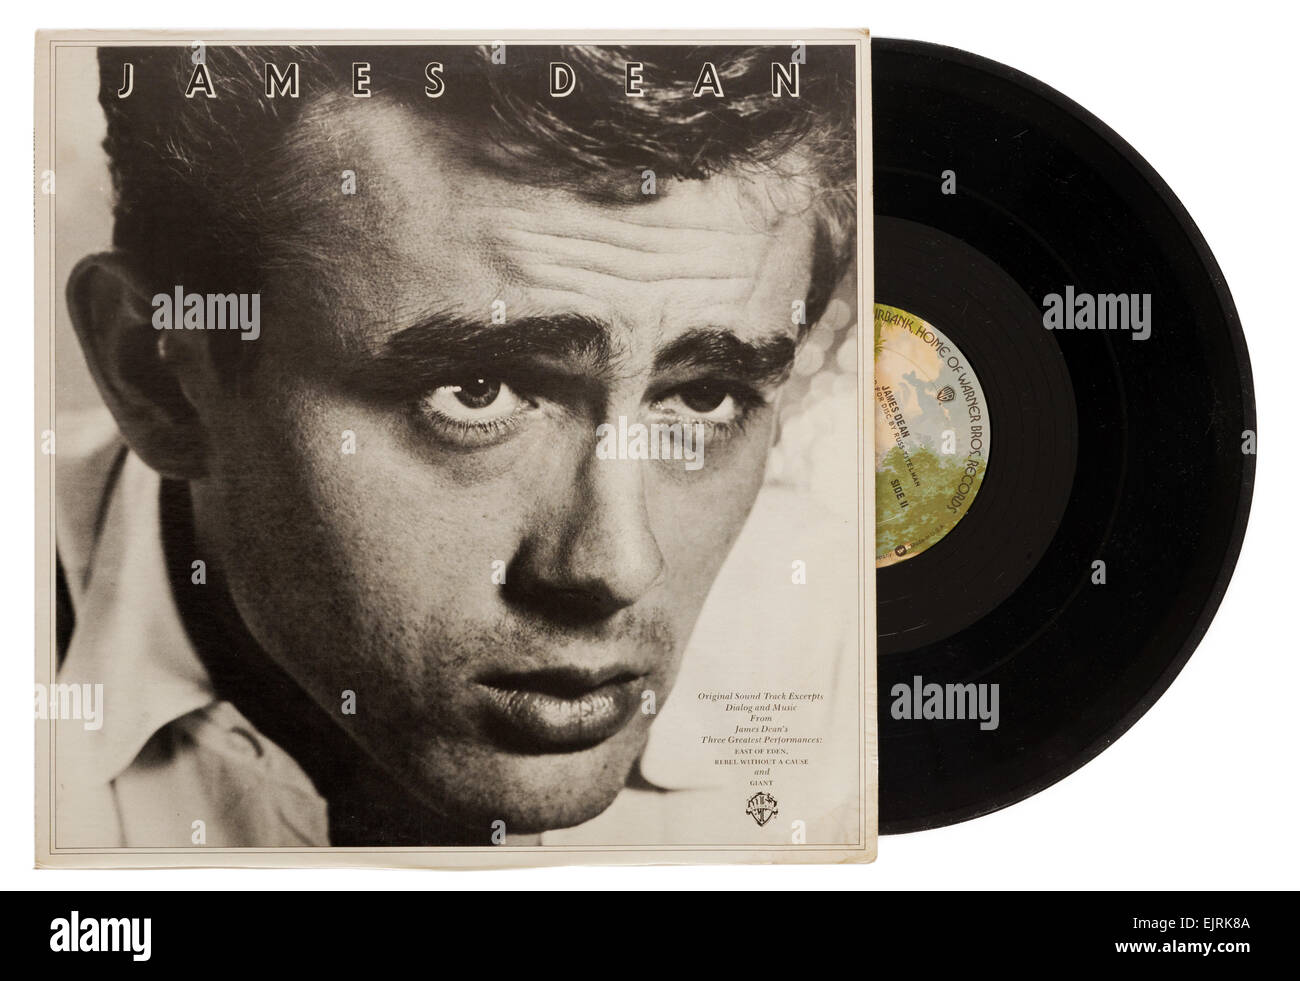 James Dean album of dialogue and music from East of Eden and Rebel Without a Cause - Stock Image